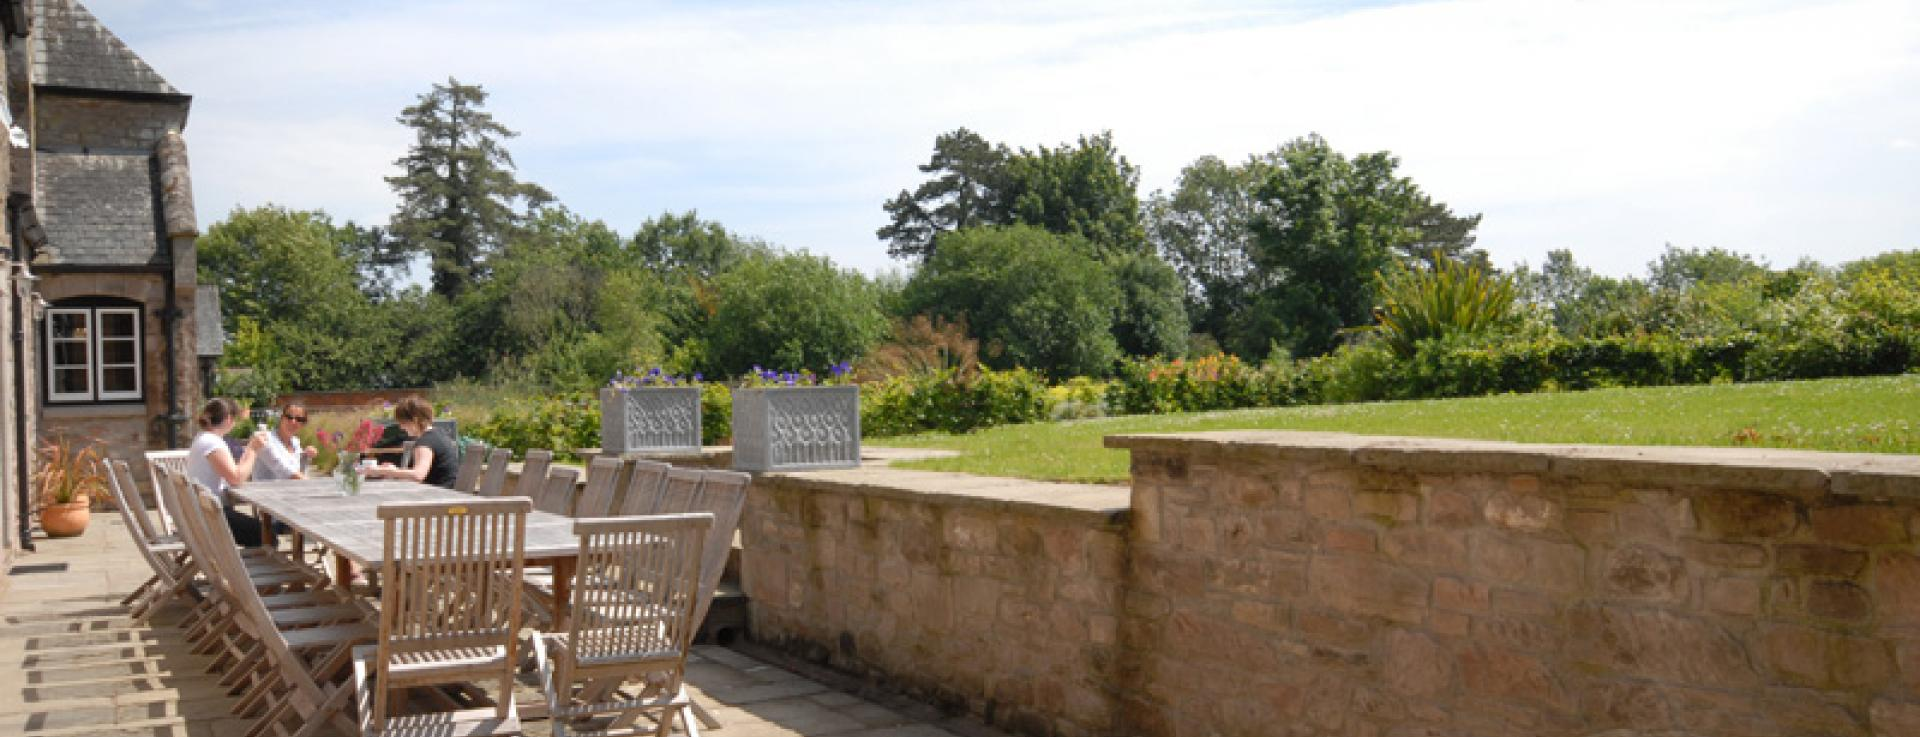 Outdoor terrace at The Colloquy